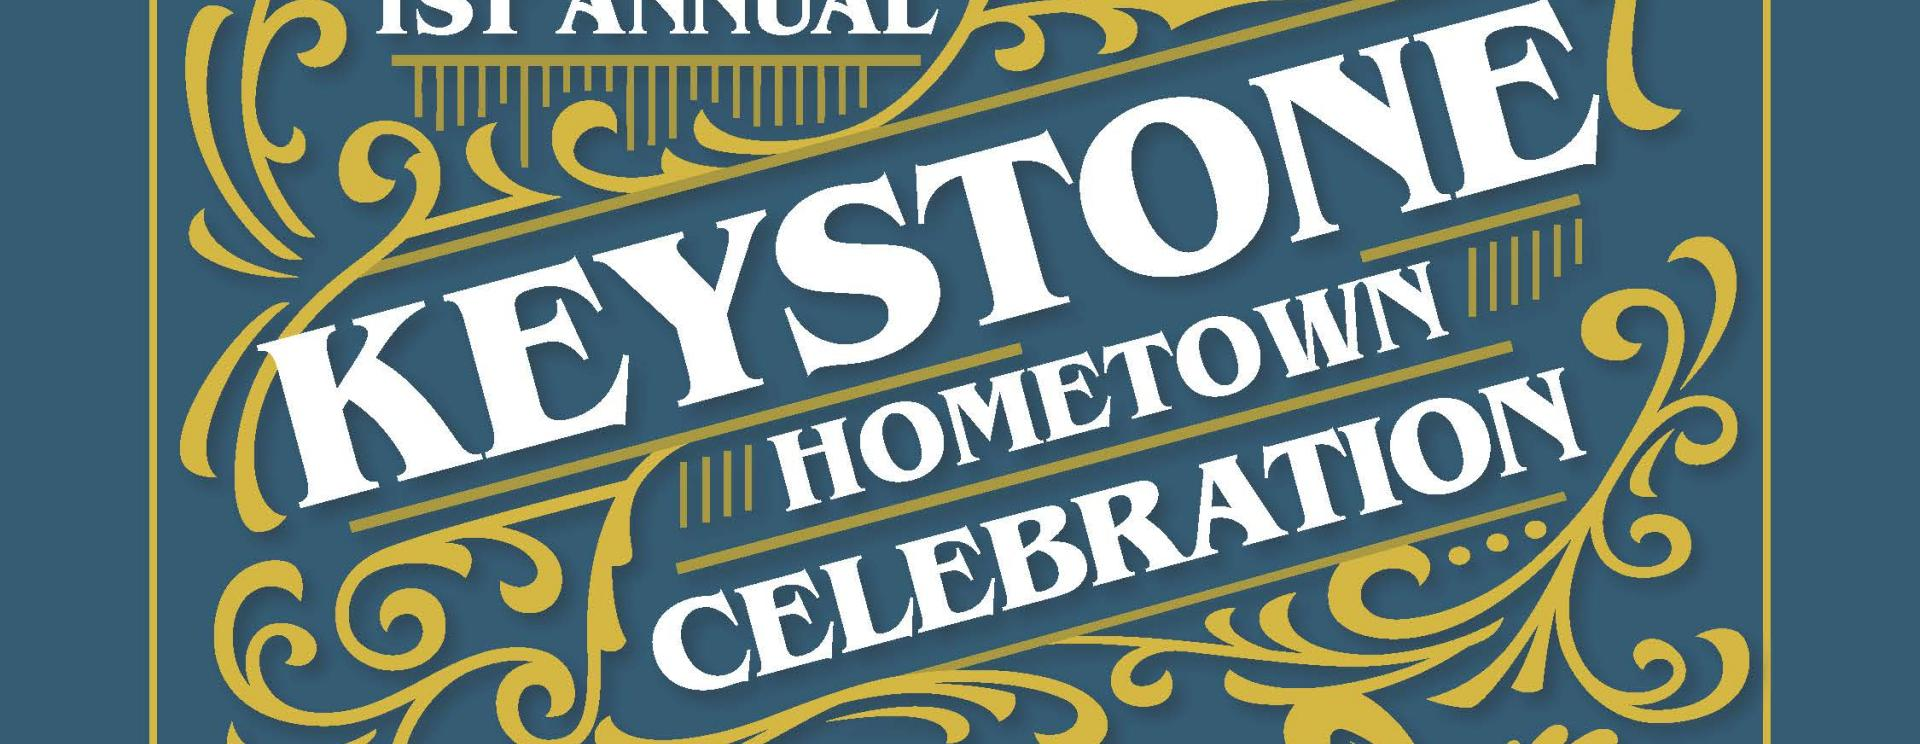 Keystone Hometown Celebration